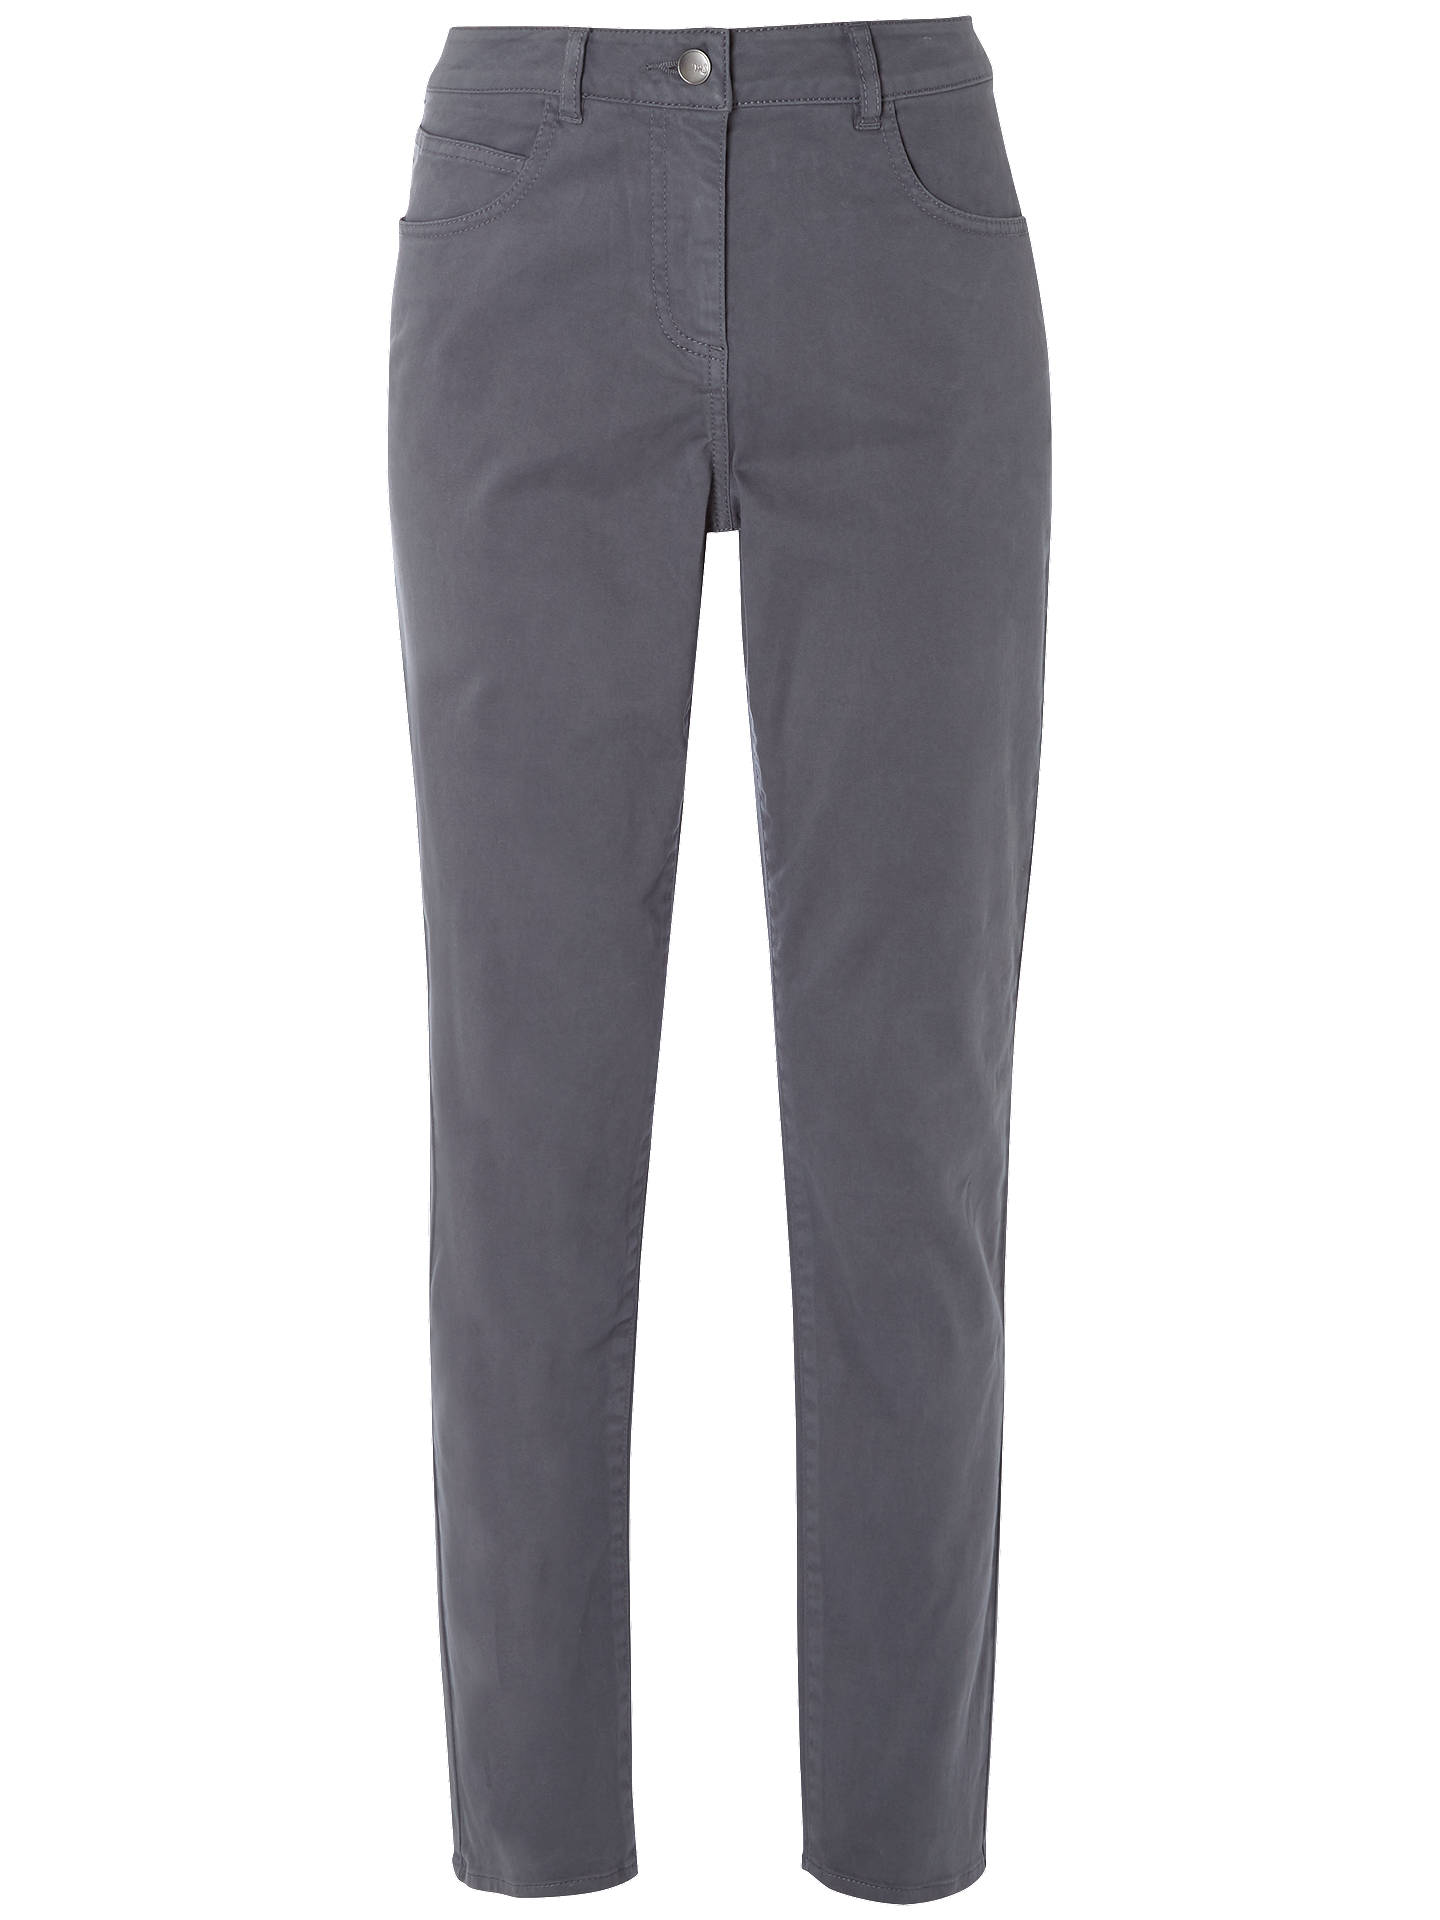 BuyWhite Stuff Oak Peached Slim Trousers, Charcoal, 6 Online at johnlewis.com